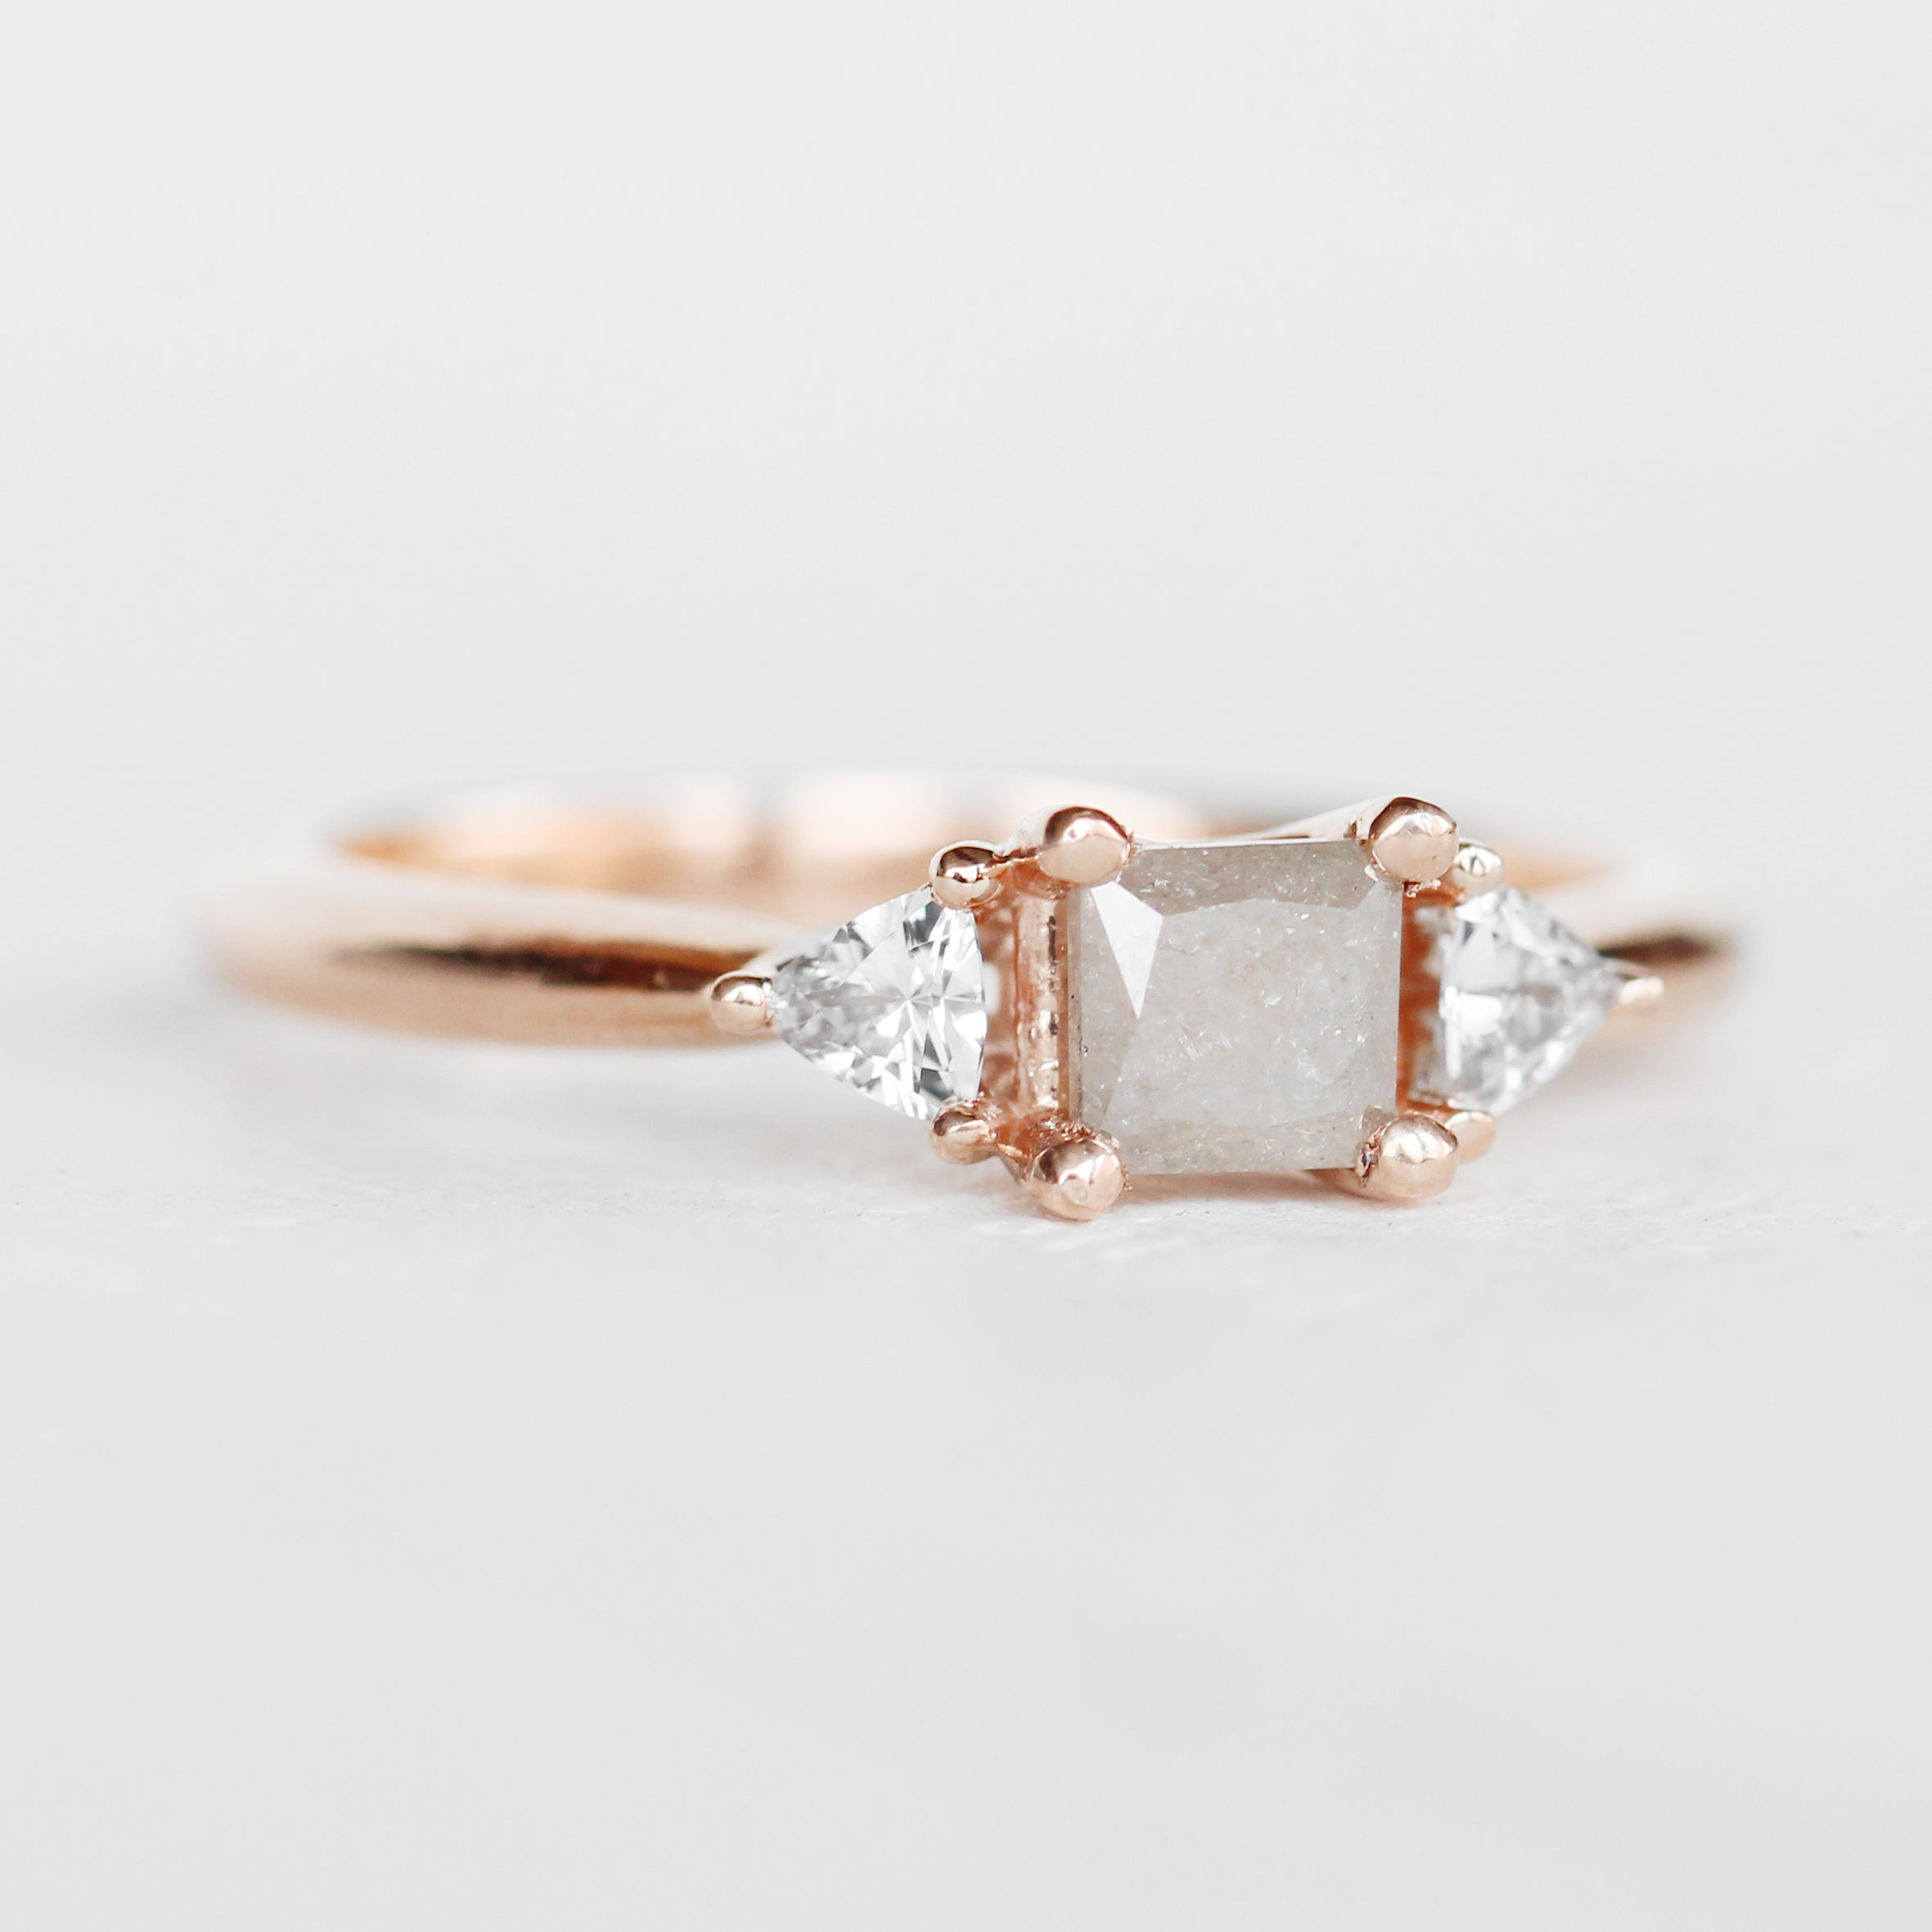 Nolen setting - Salt & Pepper Celestial Diamond Engagement Rings and Wedding Bands  by Midwinter Co.